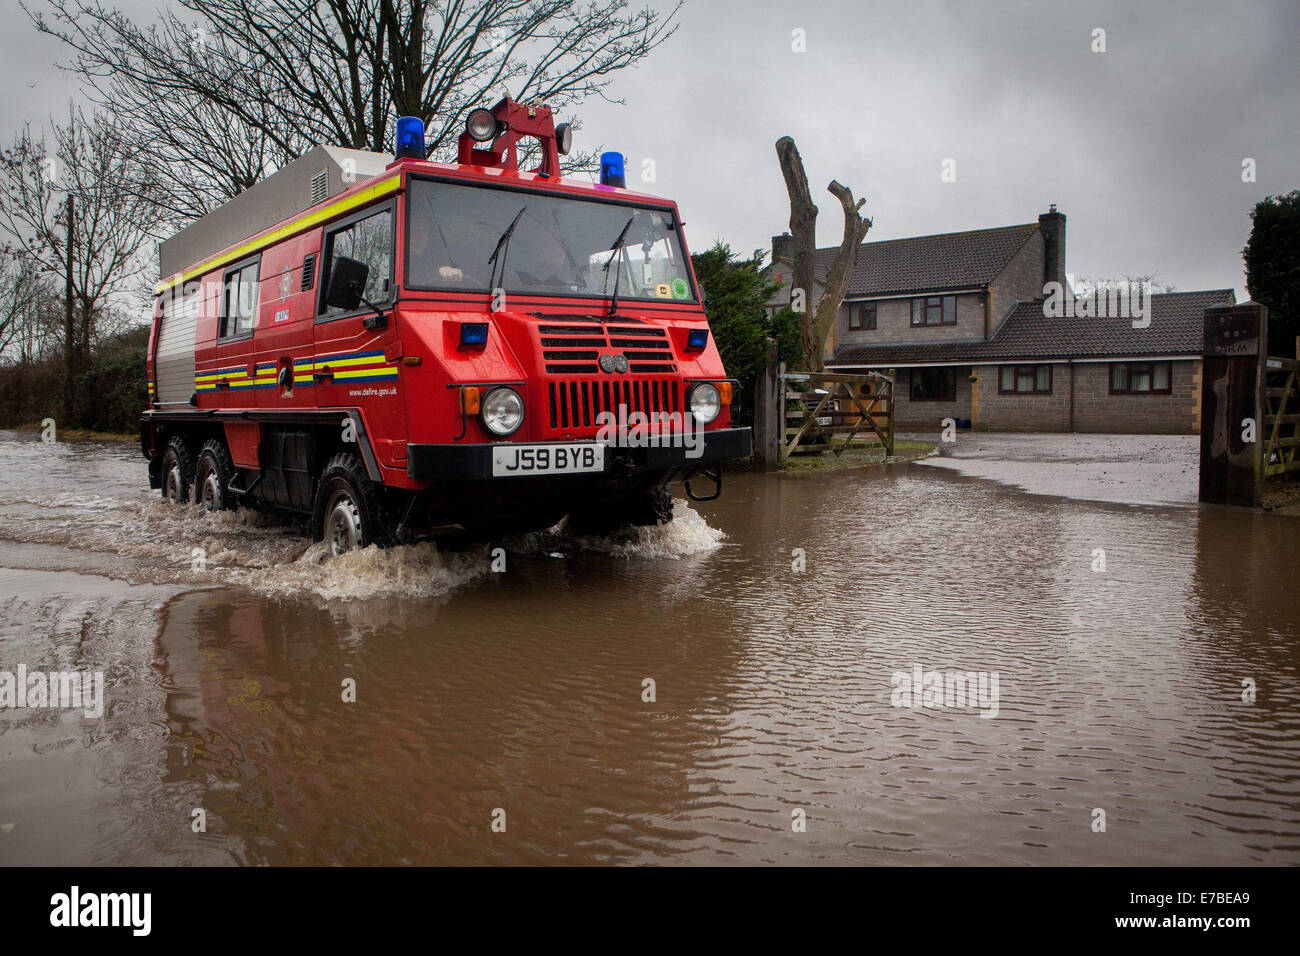 A fire service truck drives through Thorney, Somerset. Stock Photo